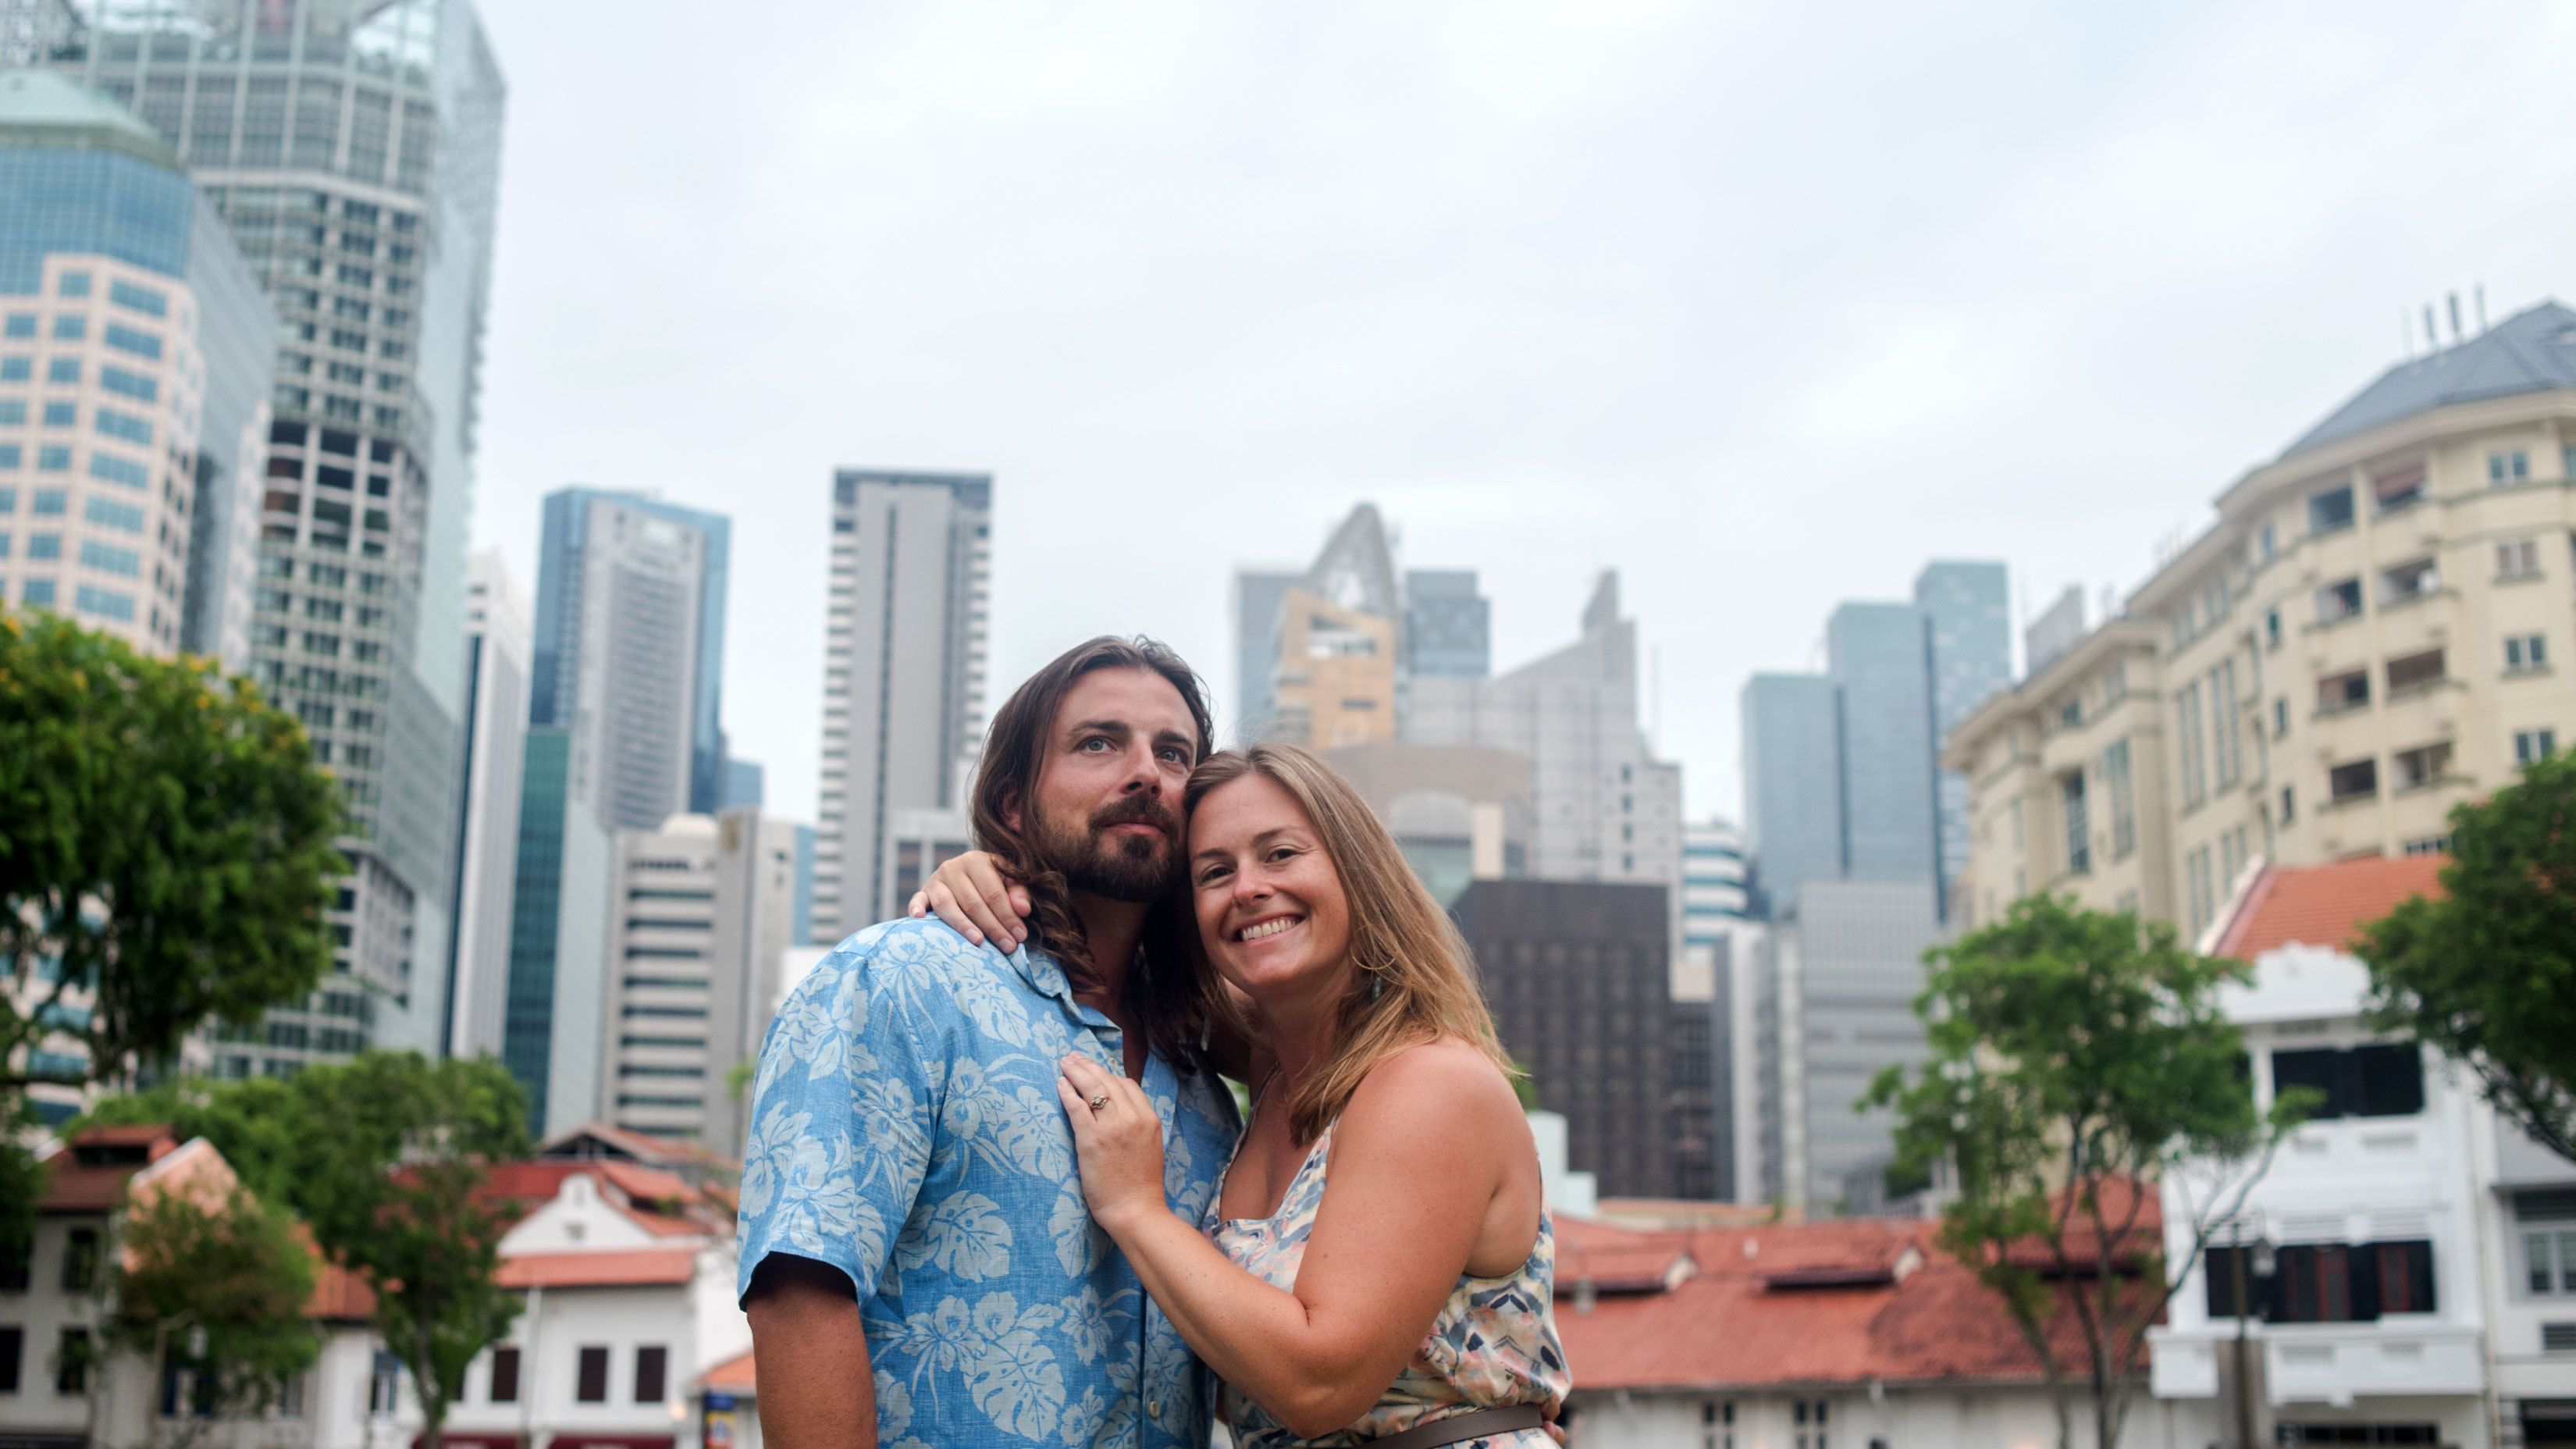 Couple posing with city in the background in Singapore